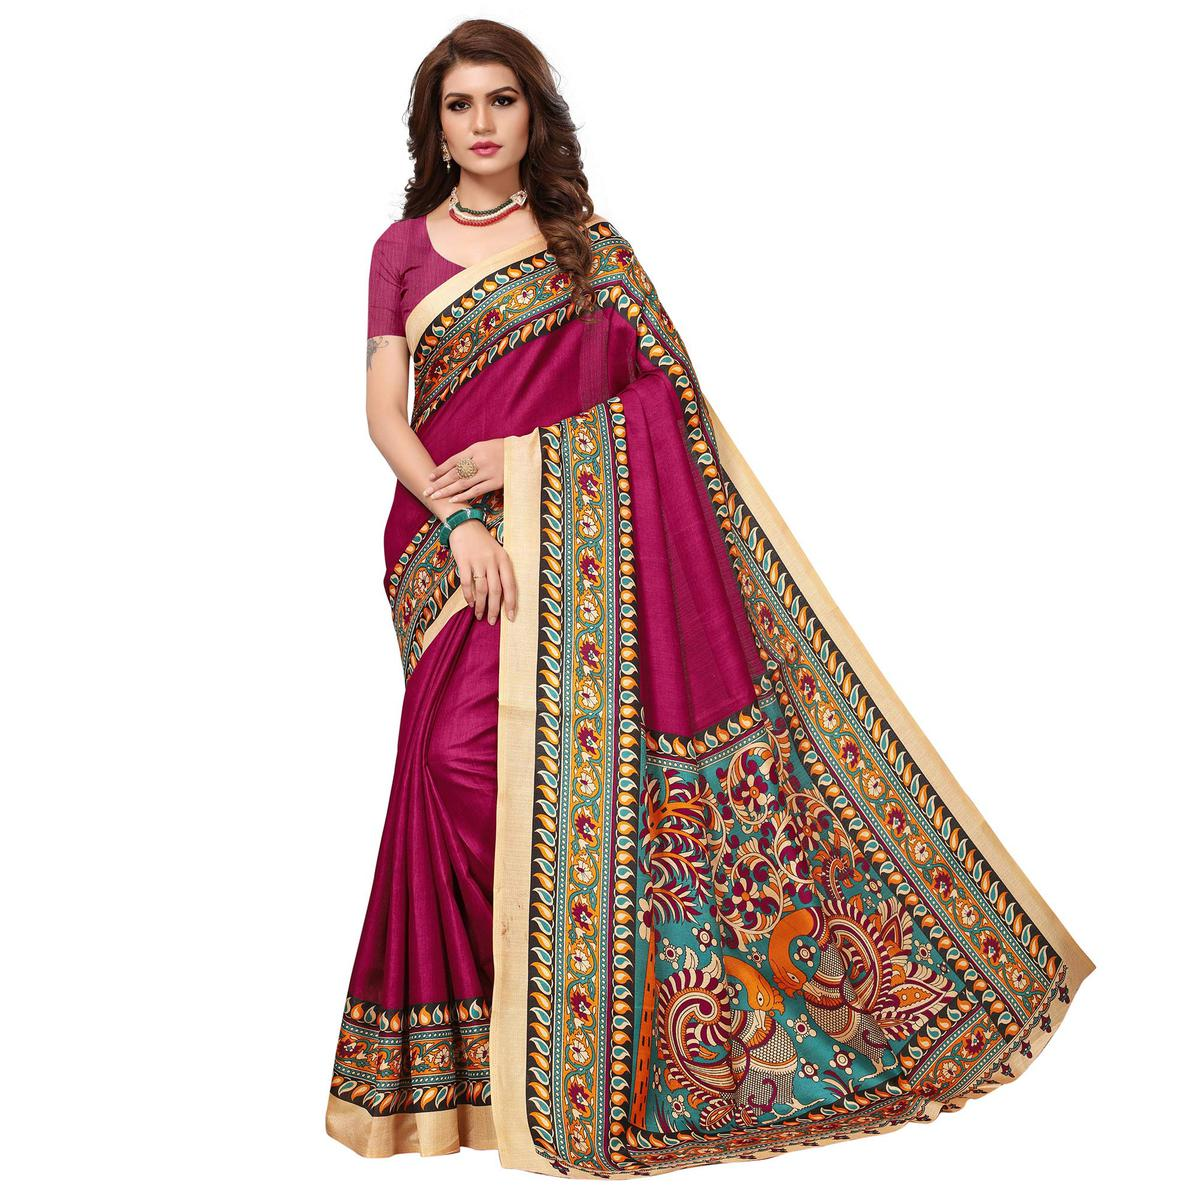 Eye-catching Magenta Pink Colored Casual Wear Printed Kalamkari Silk Saree